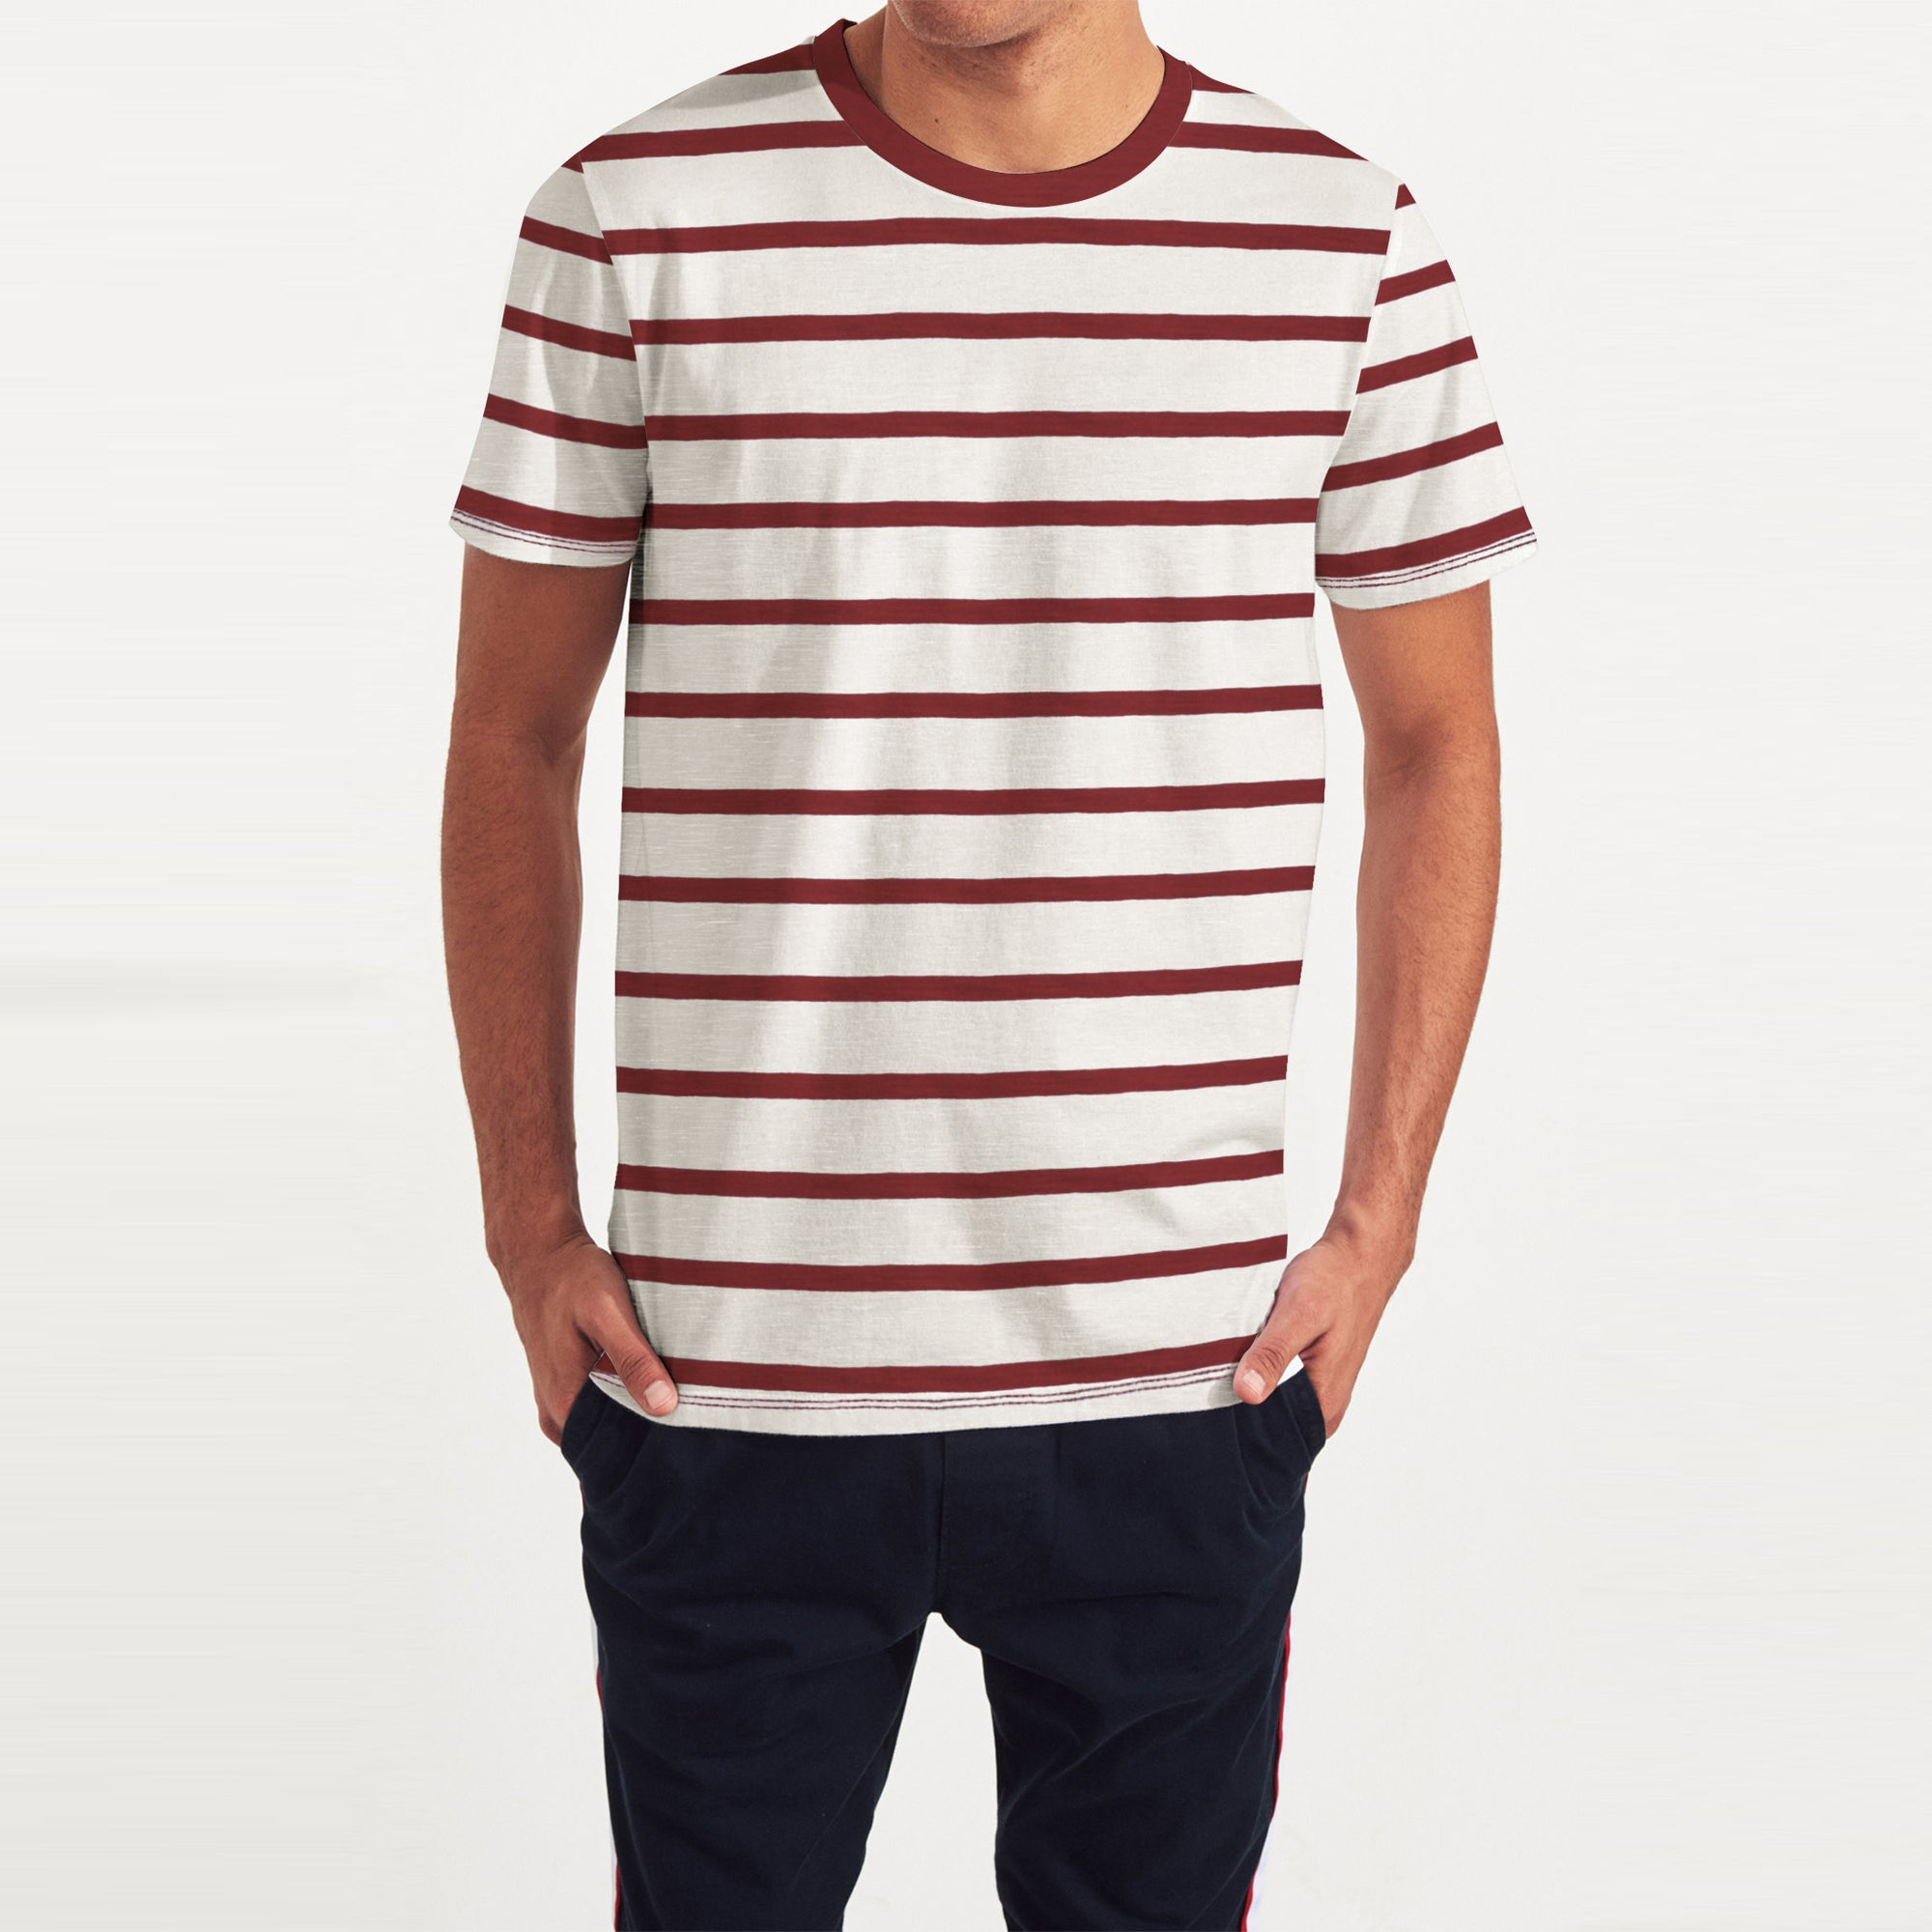 Fat Face Crew Neck Half Sleeve Tee Shirt For Men-Off White with Stripe-BE8114